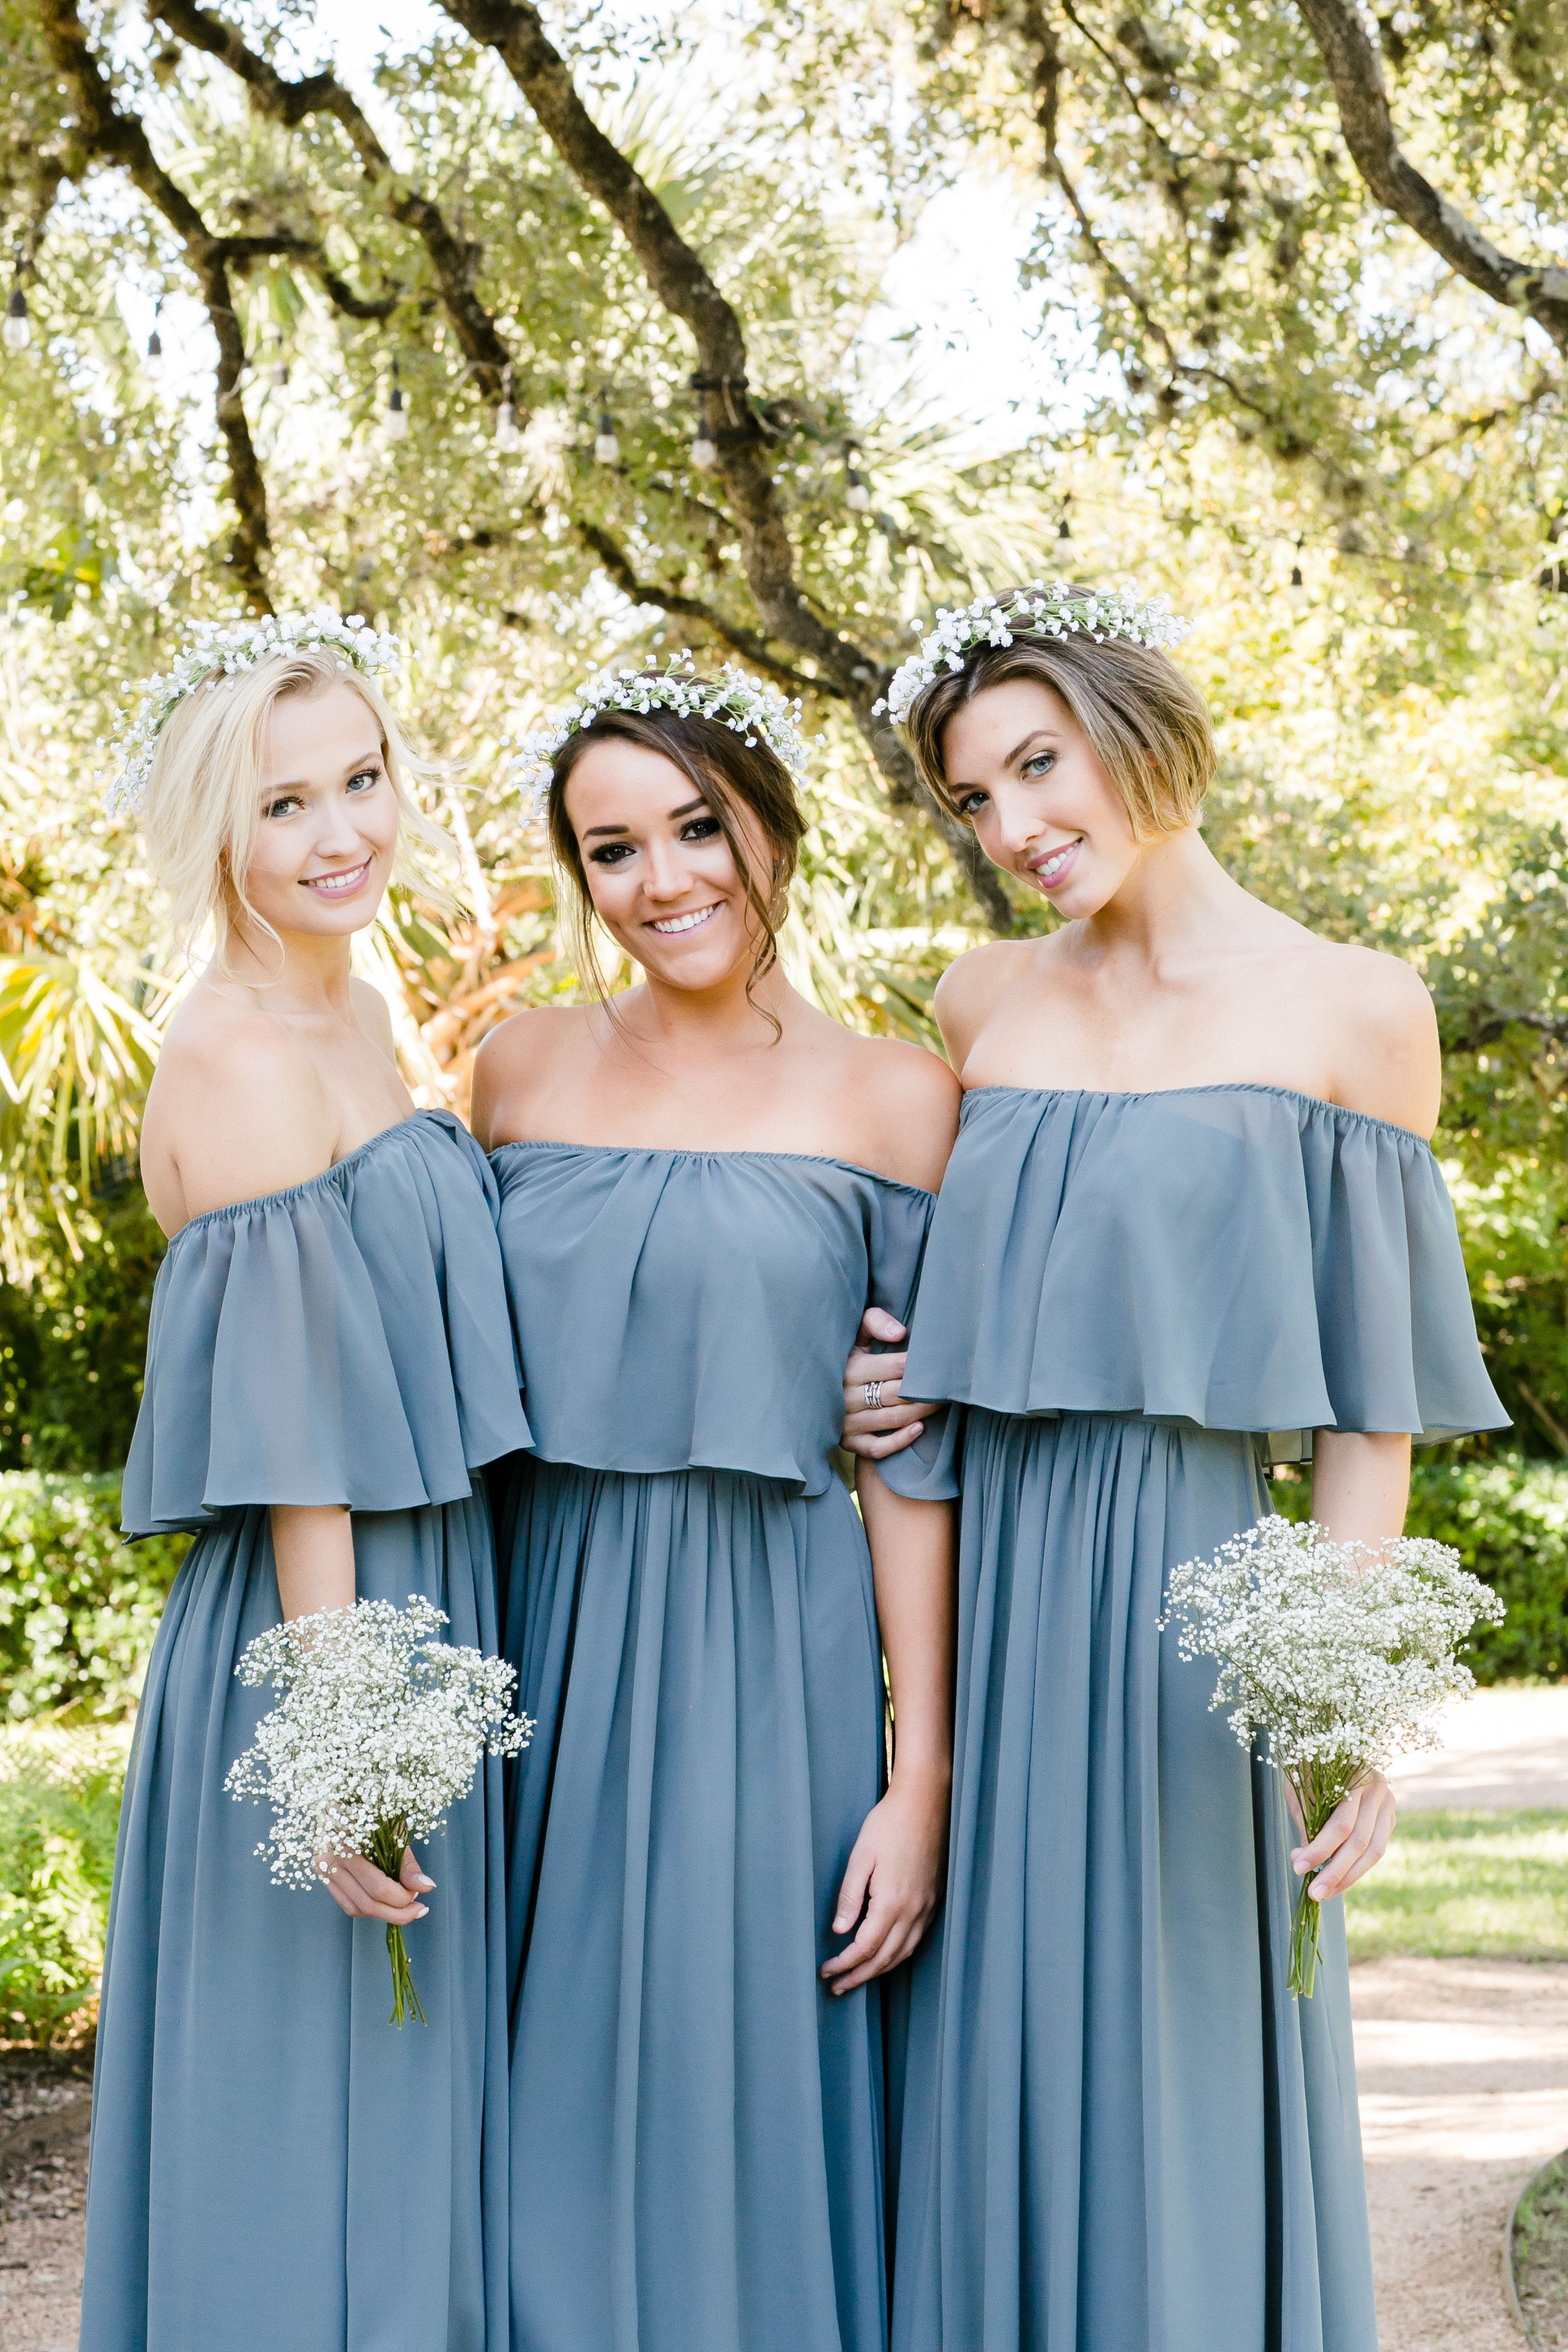 Dusty blue wedding dress  Boho off the shoulder bridesmaid dress Abigail from Revelry looks